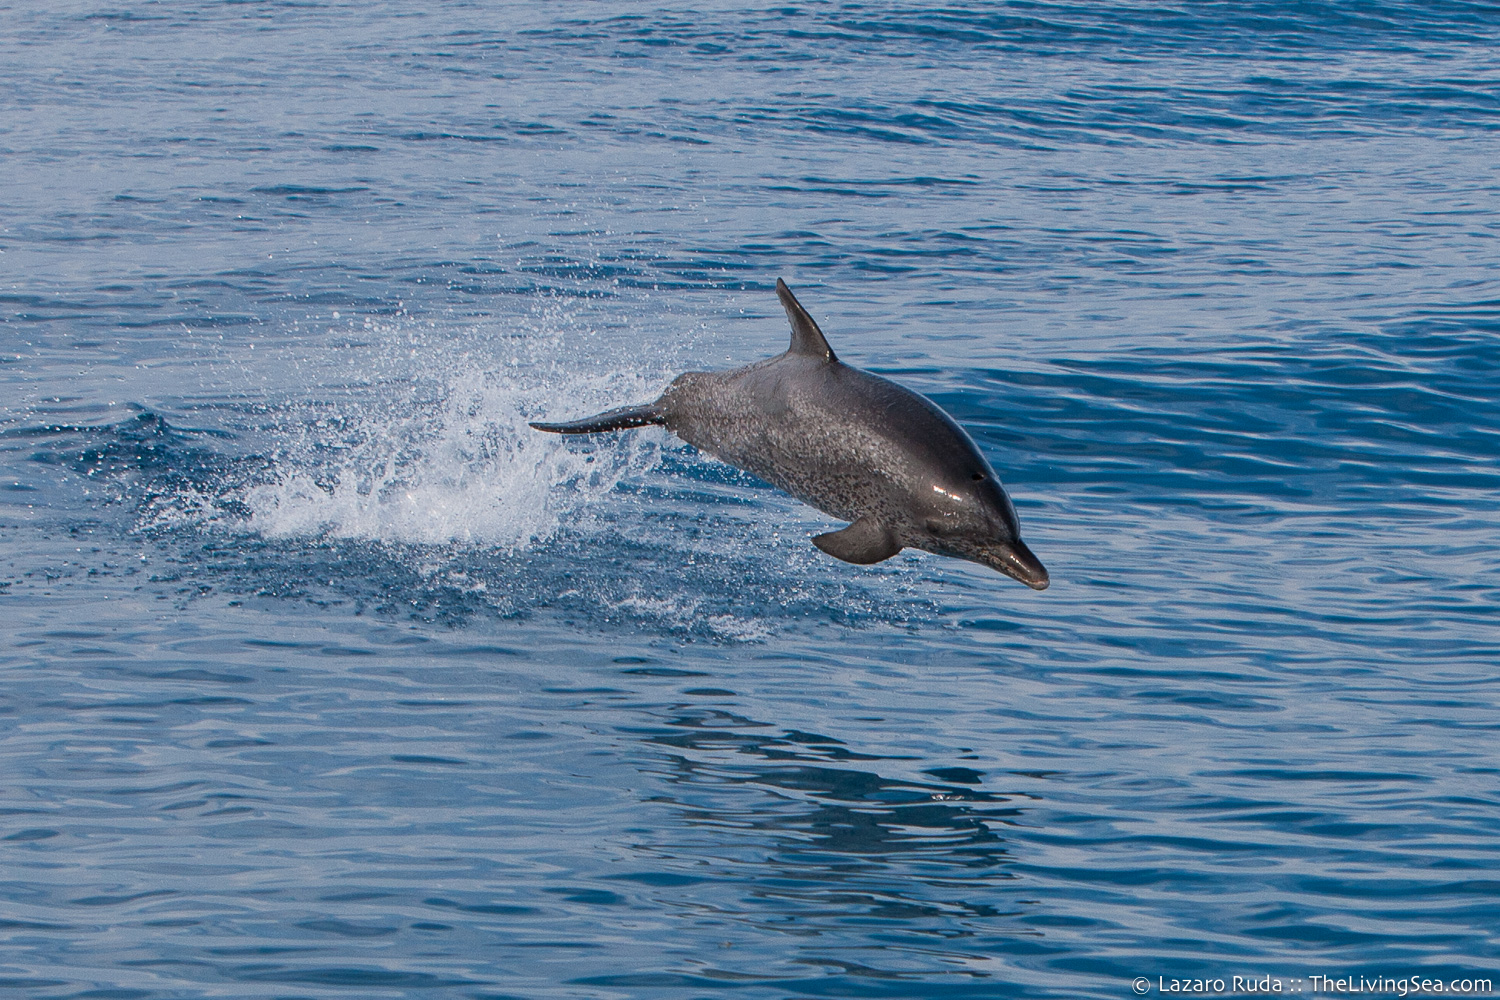 Atlantic spotted dolphin: Stenella frontalis, Cetaceans: Cetacea, Mammalia, Marine Dolphins: Delphinidae, Marine Life, Marine Mammals, adult, blue, body - full, copyrighted, dolphin, favorite, front-side profile, gray, horizontal, jumping / leaping, landscape, large, larger than 56 inches, mammal, marine, mature, ocean, ocean surface, sleek, swimming, telephoto, underwater, underwater photo, zoom